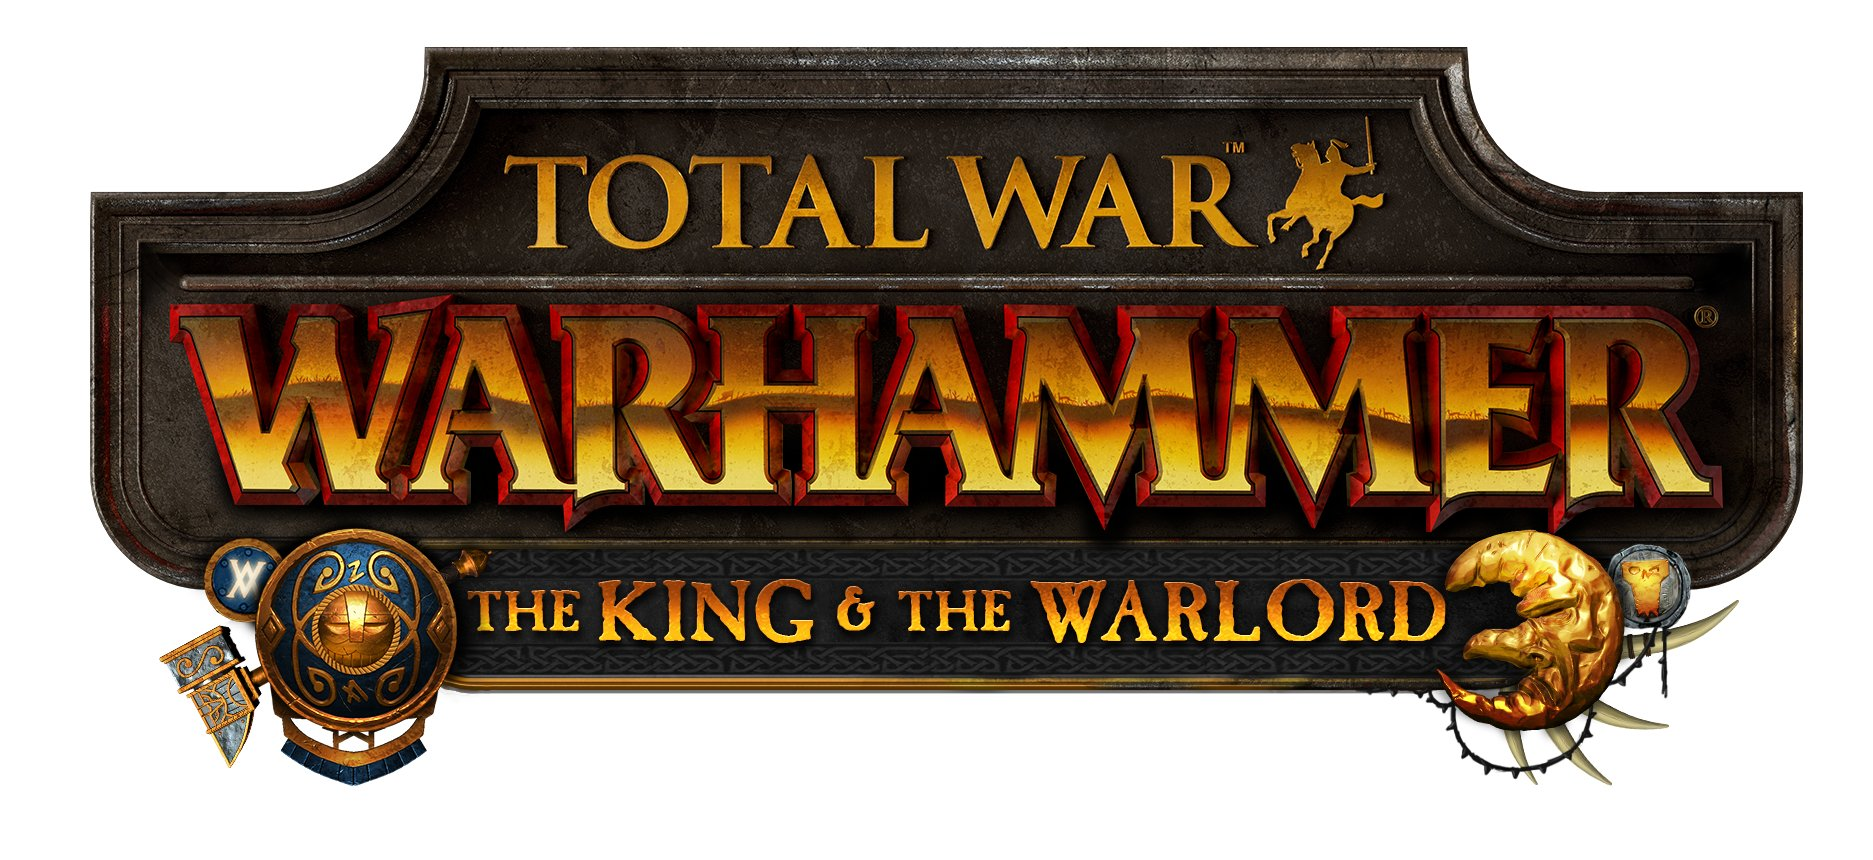 king and the warlord featured - Total War: Warhammer - The King and the Warlord (Video Game DLC)